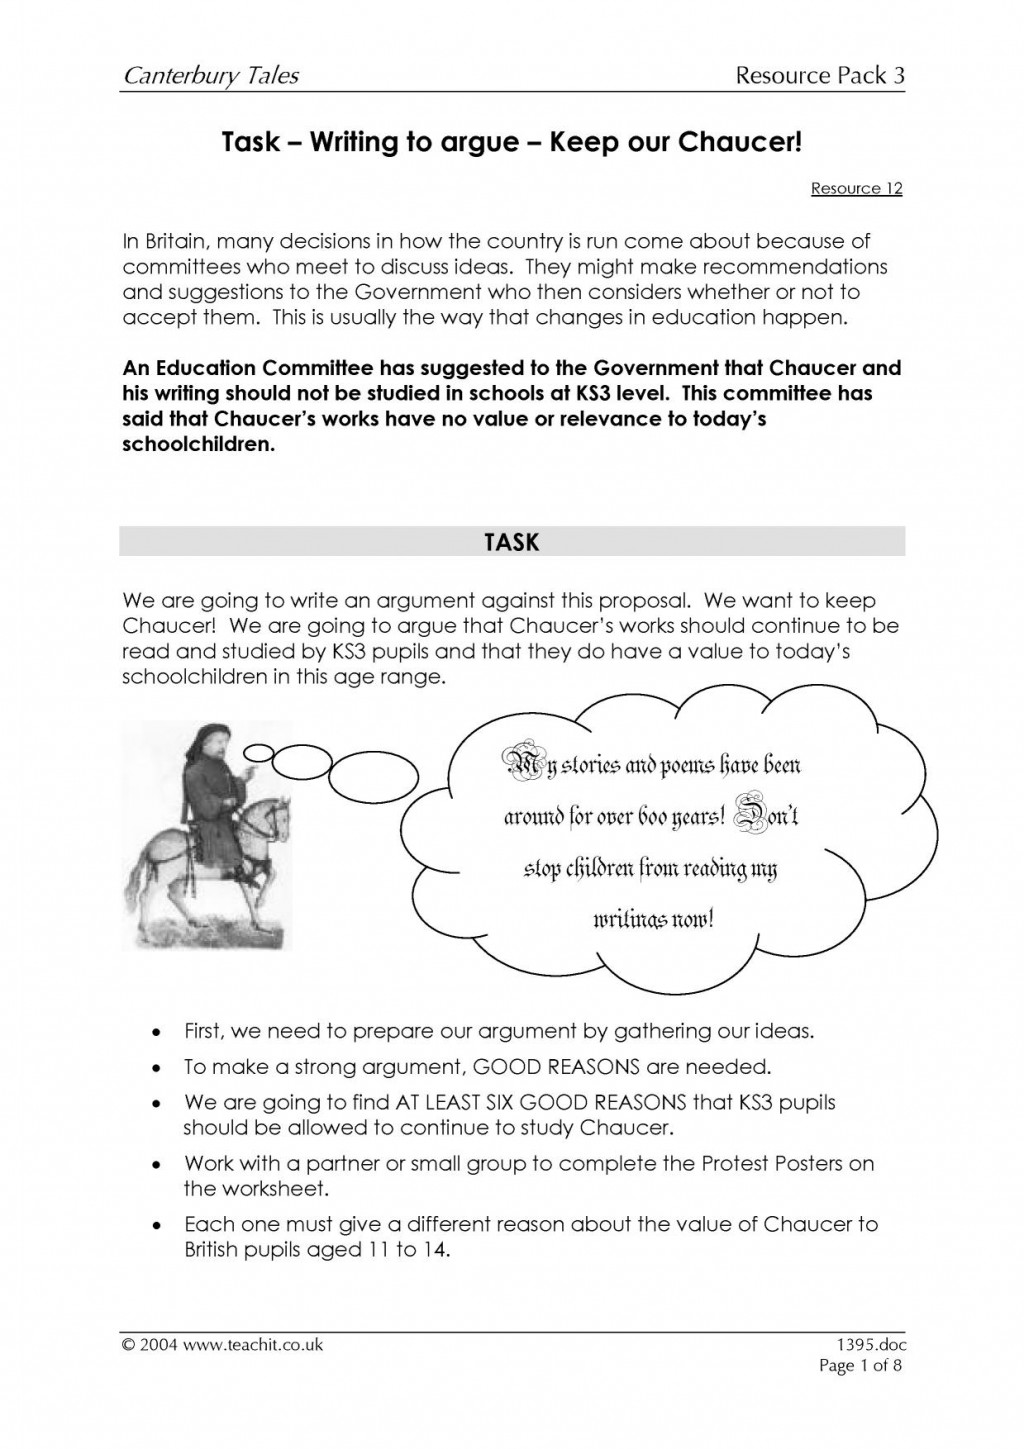 014 Canterbury Tales Essay Topics Best Images20ologue Questions20 Questions For Research Remarkable Paper Defense Good Papers Examples Large